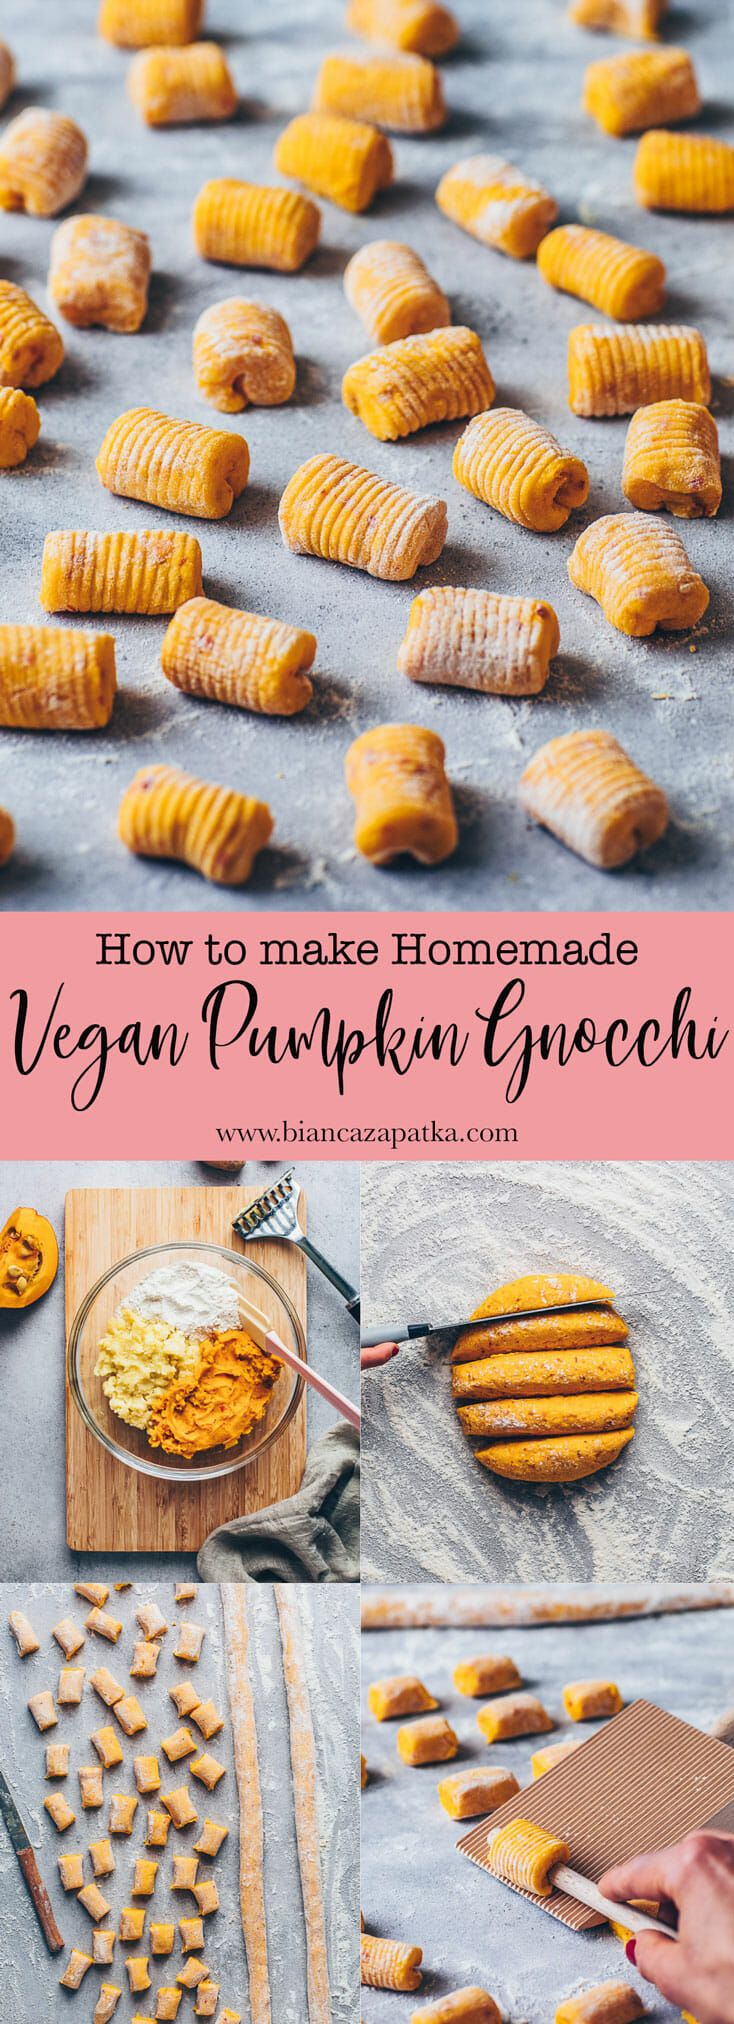 Pumpkin Gnocchi Recipe #easydinnerrecipes